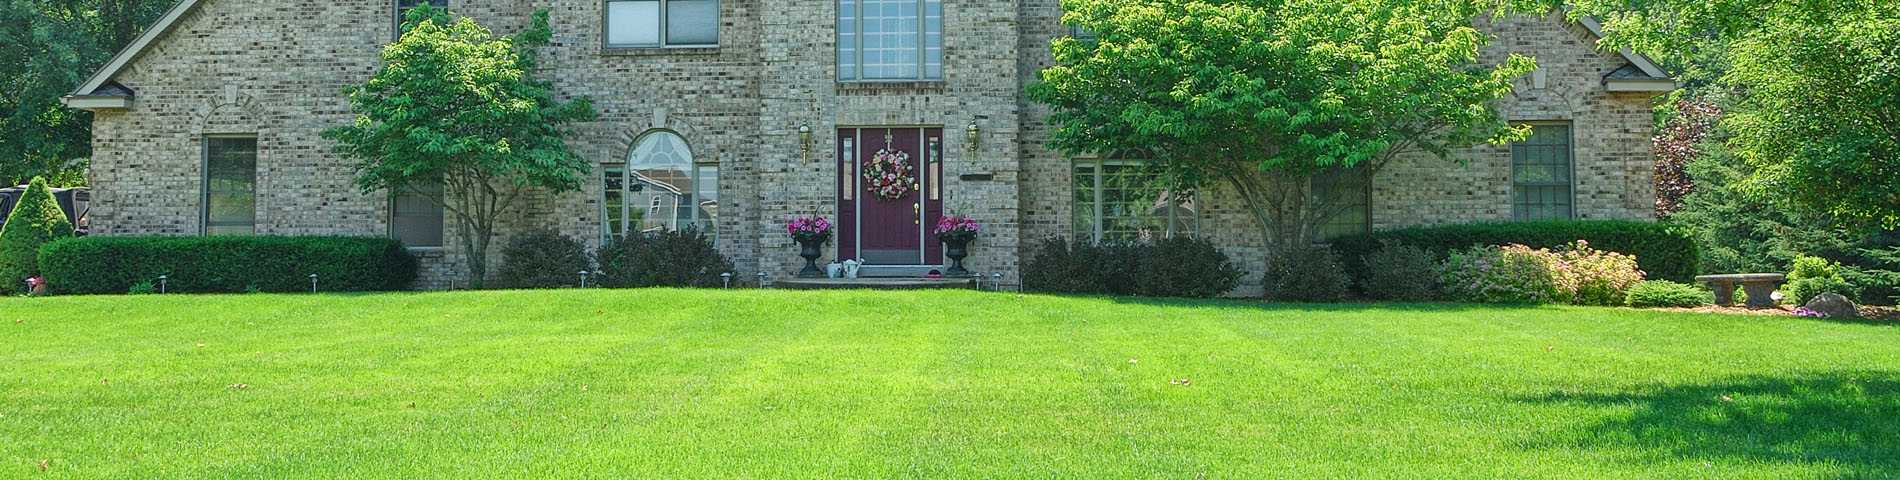 Moyers lawn service and landscaping for Lawn maintenance service